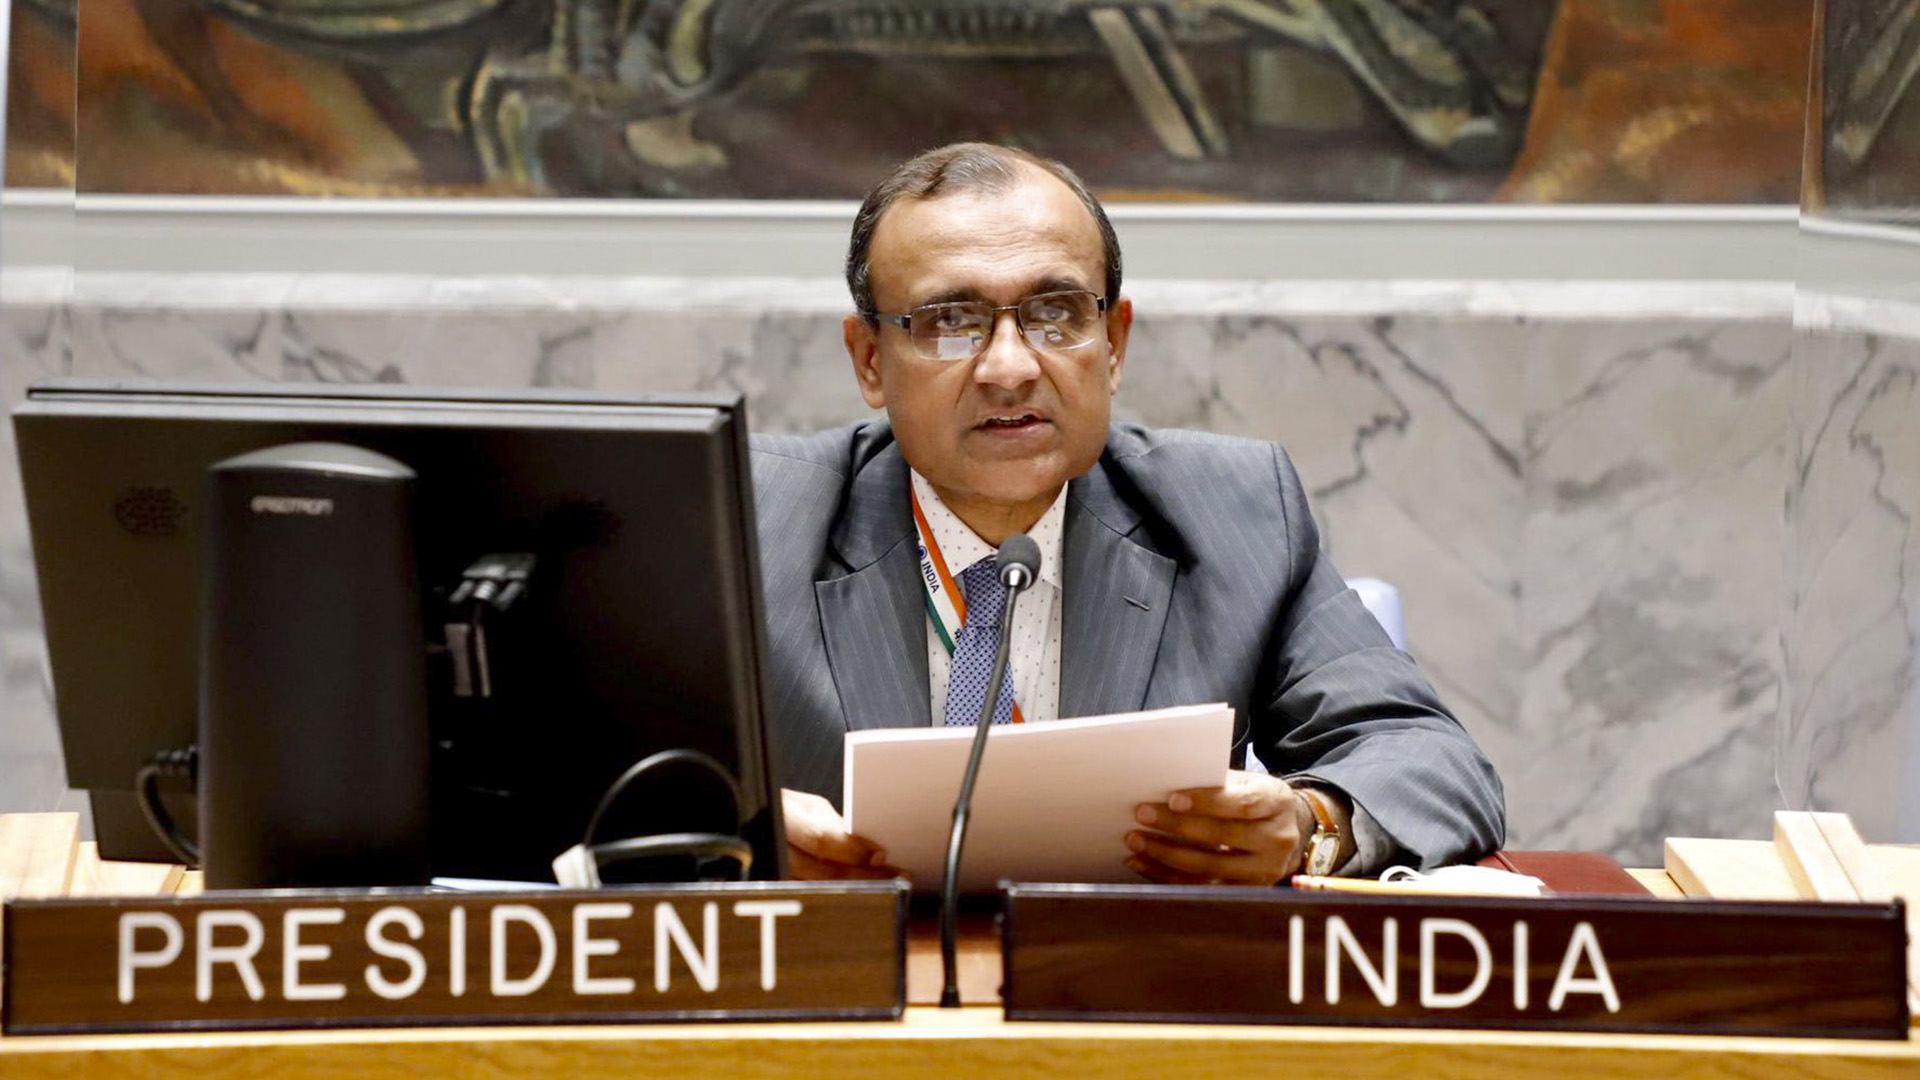 Zero Tolerance For Terrorism Central To Peace Restoration In Afghanistan: Indian Envoy To UN